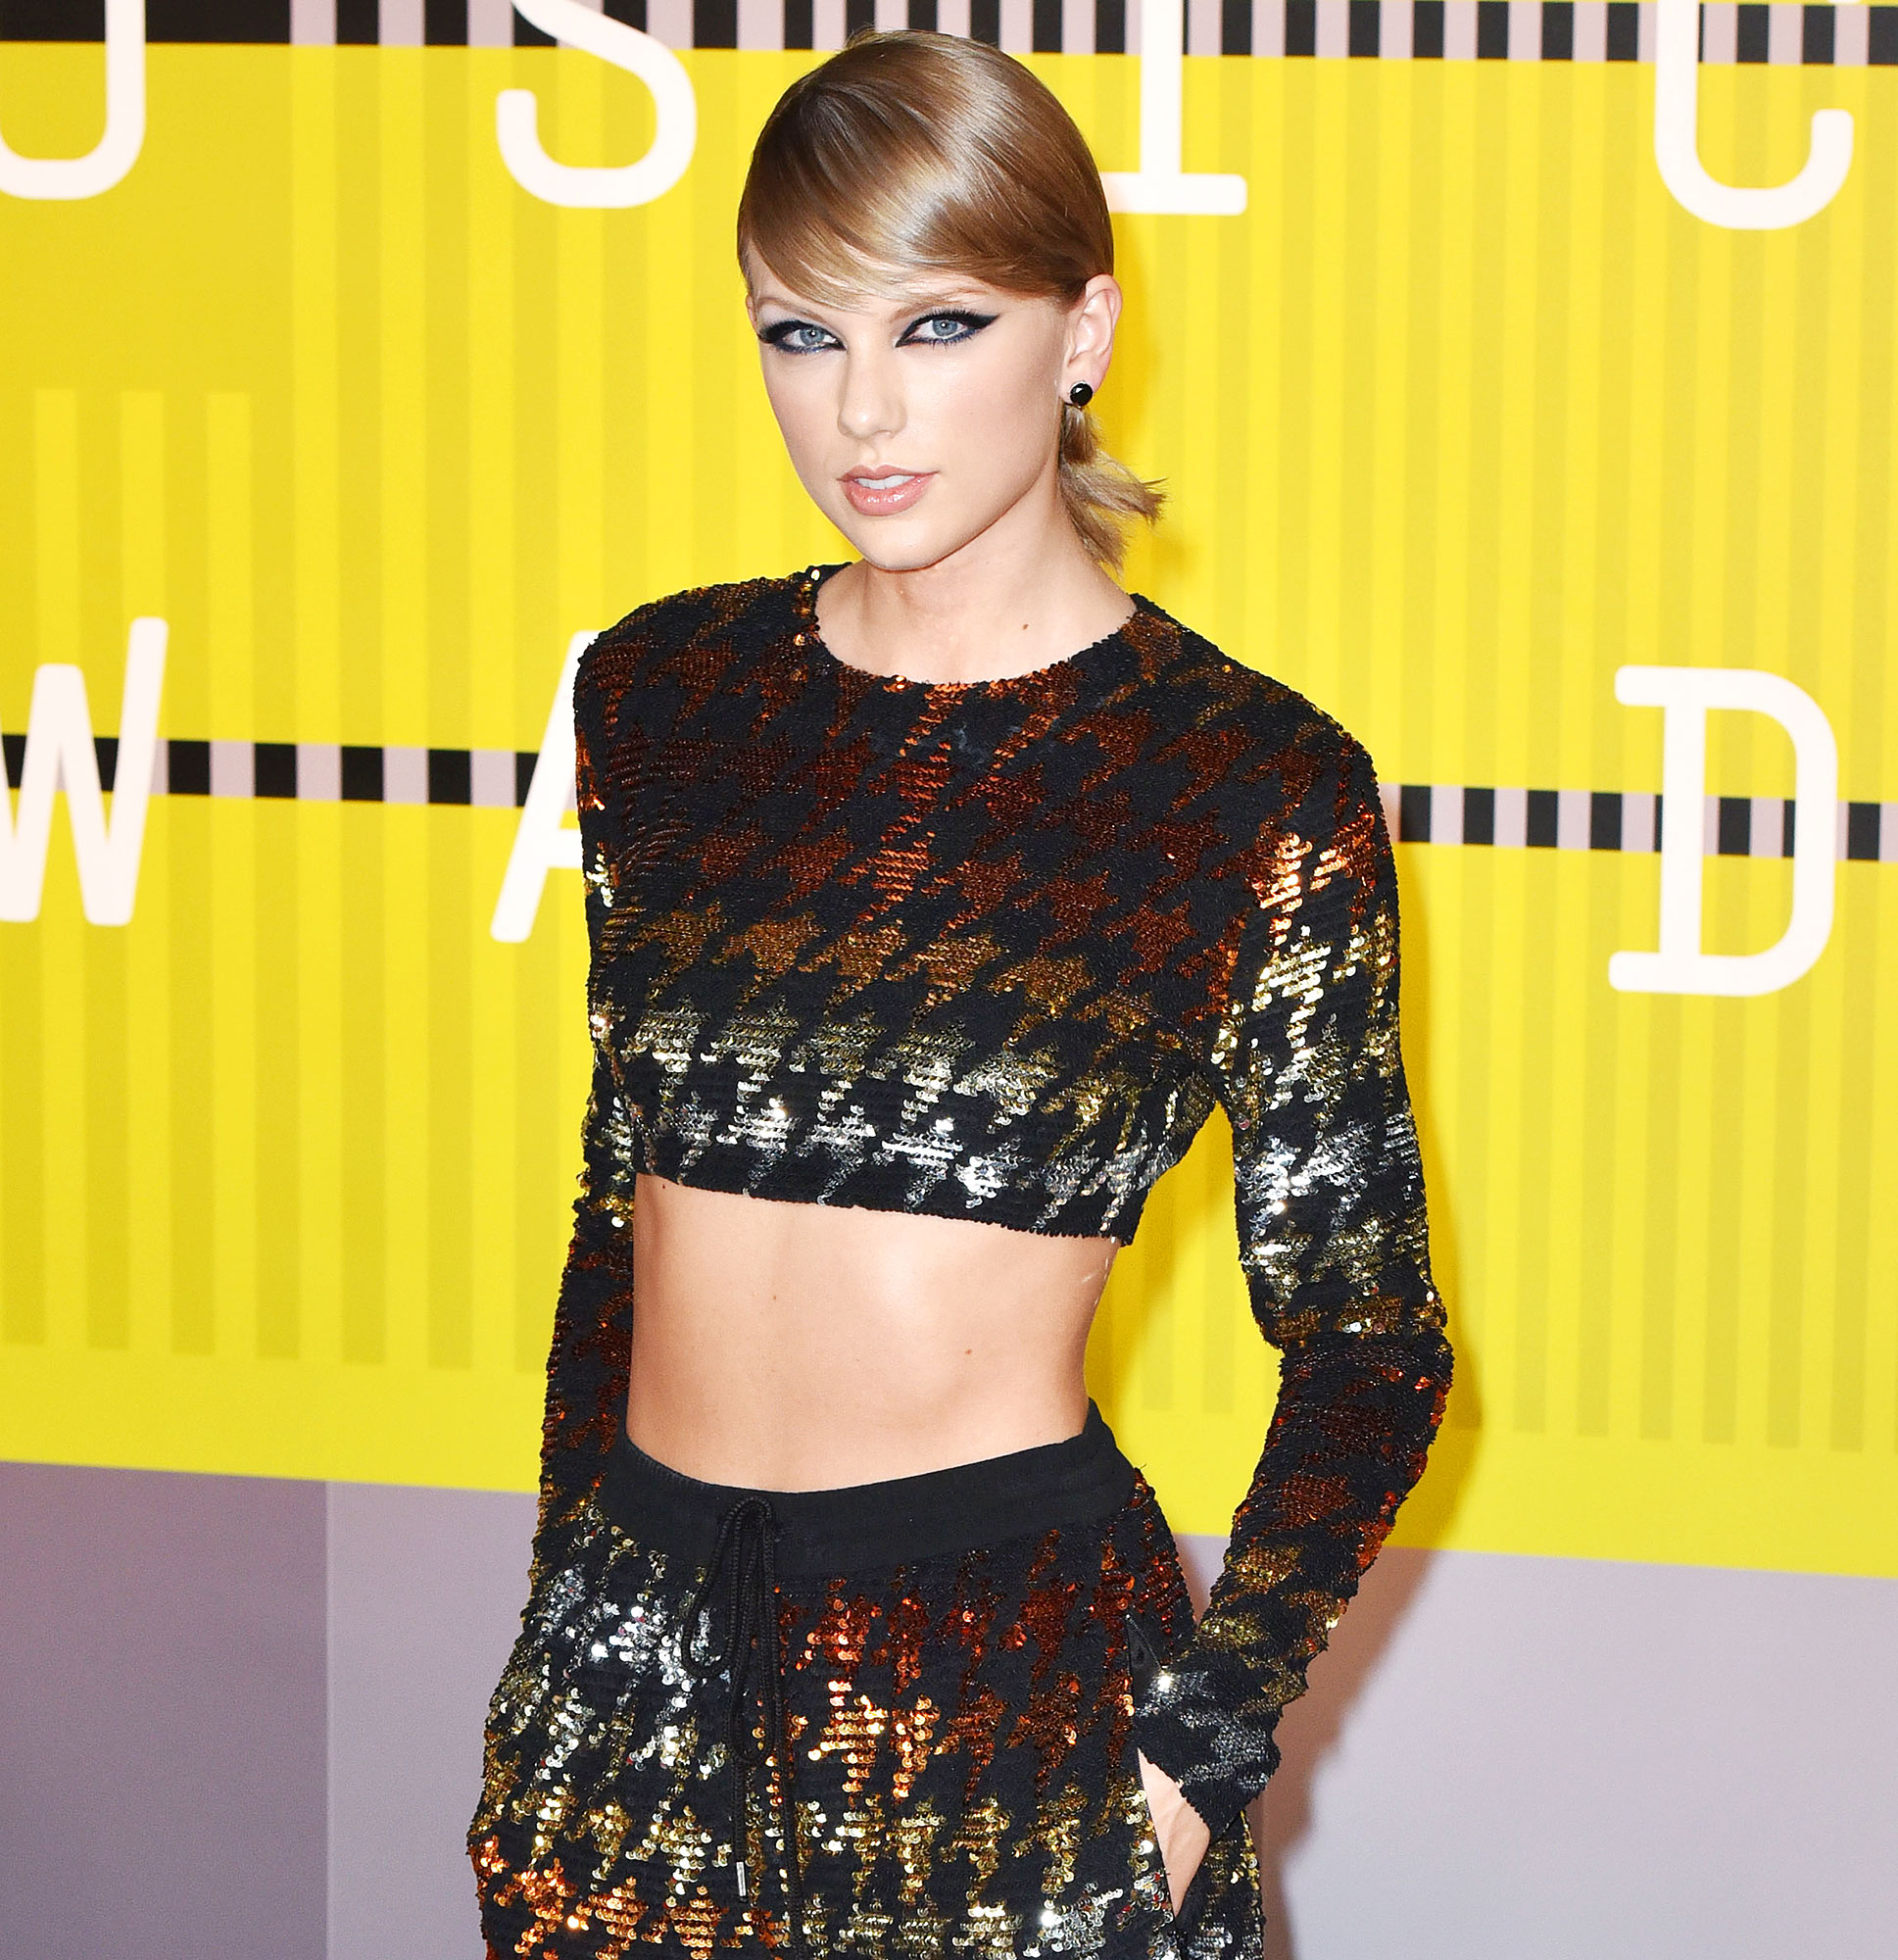 Taylor Swift Arrives to the 2015 MTV Video Music Awards Never Had the Opportunity to Purchase Her Masters Outright With a Check